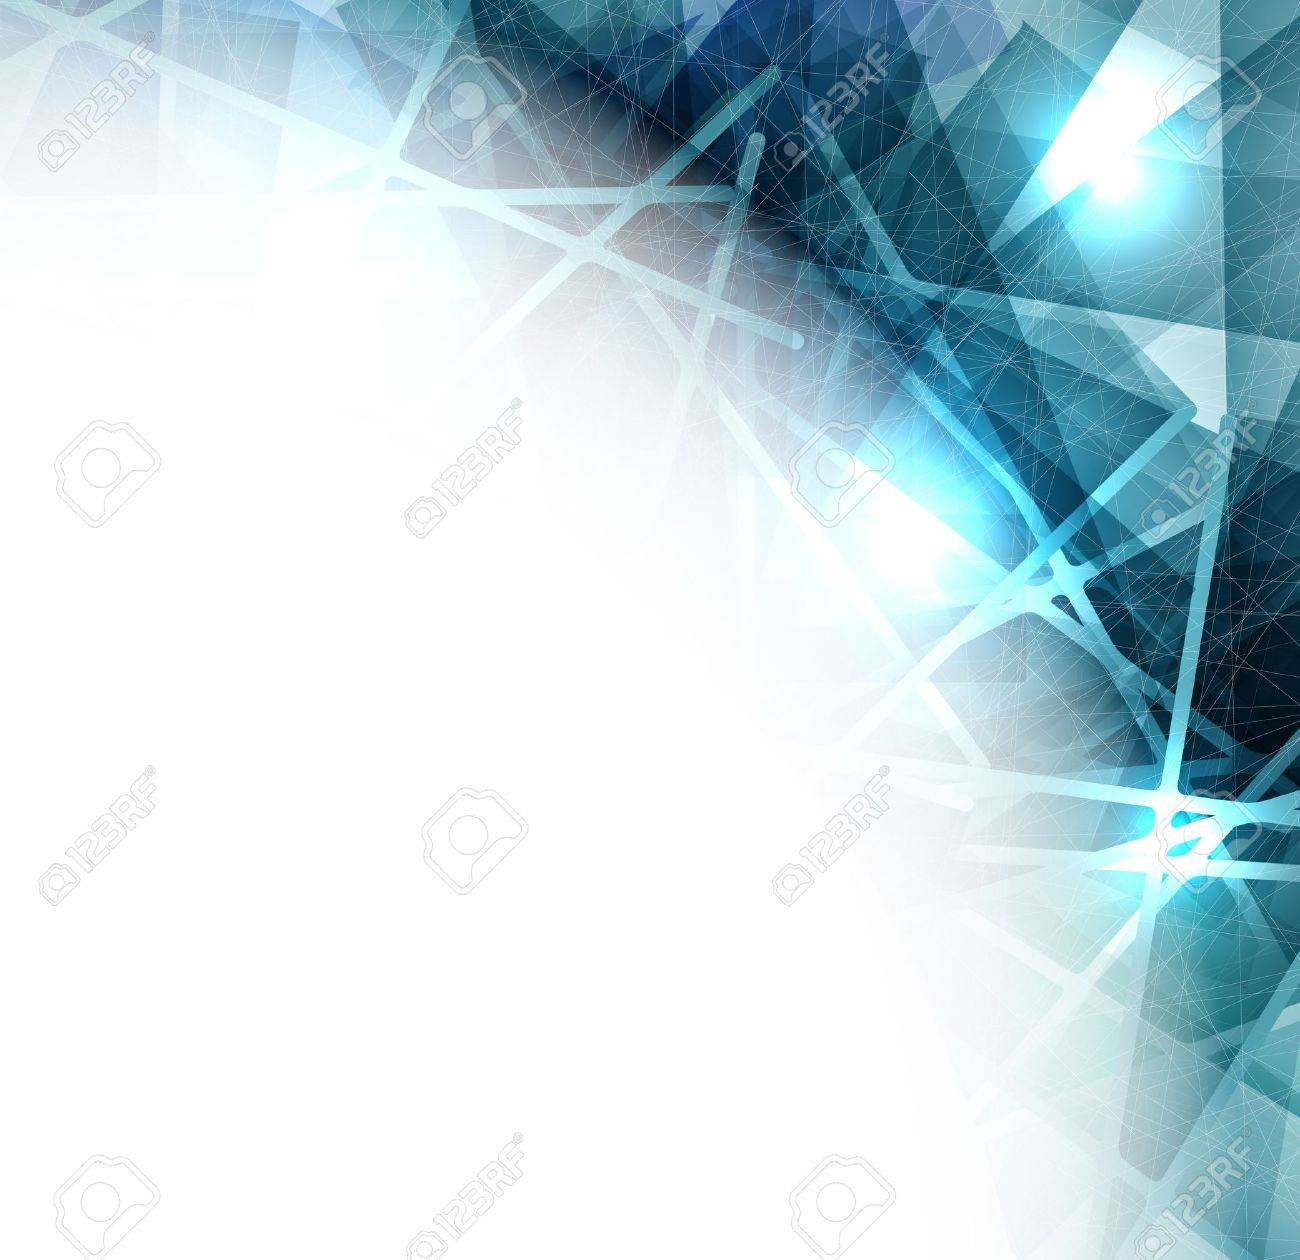 Ice abstract background texture of the frosty surface Stock Vector - 20907664